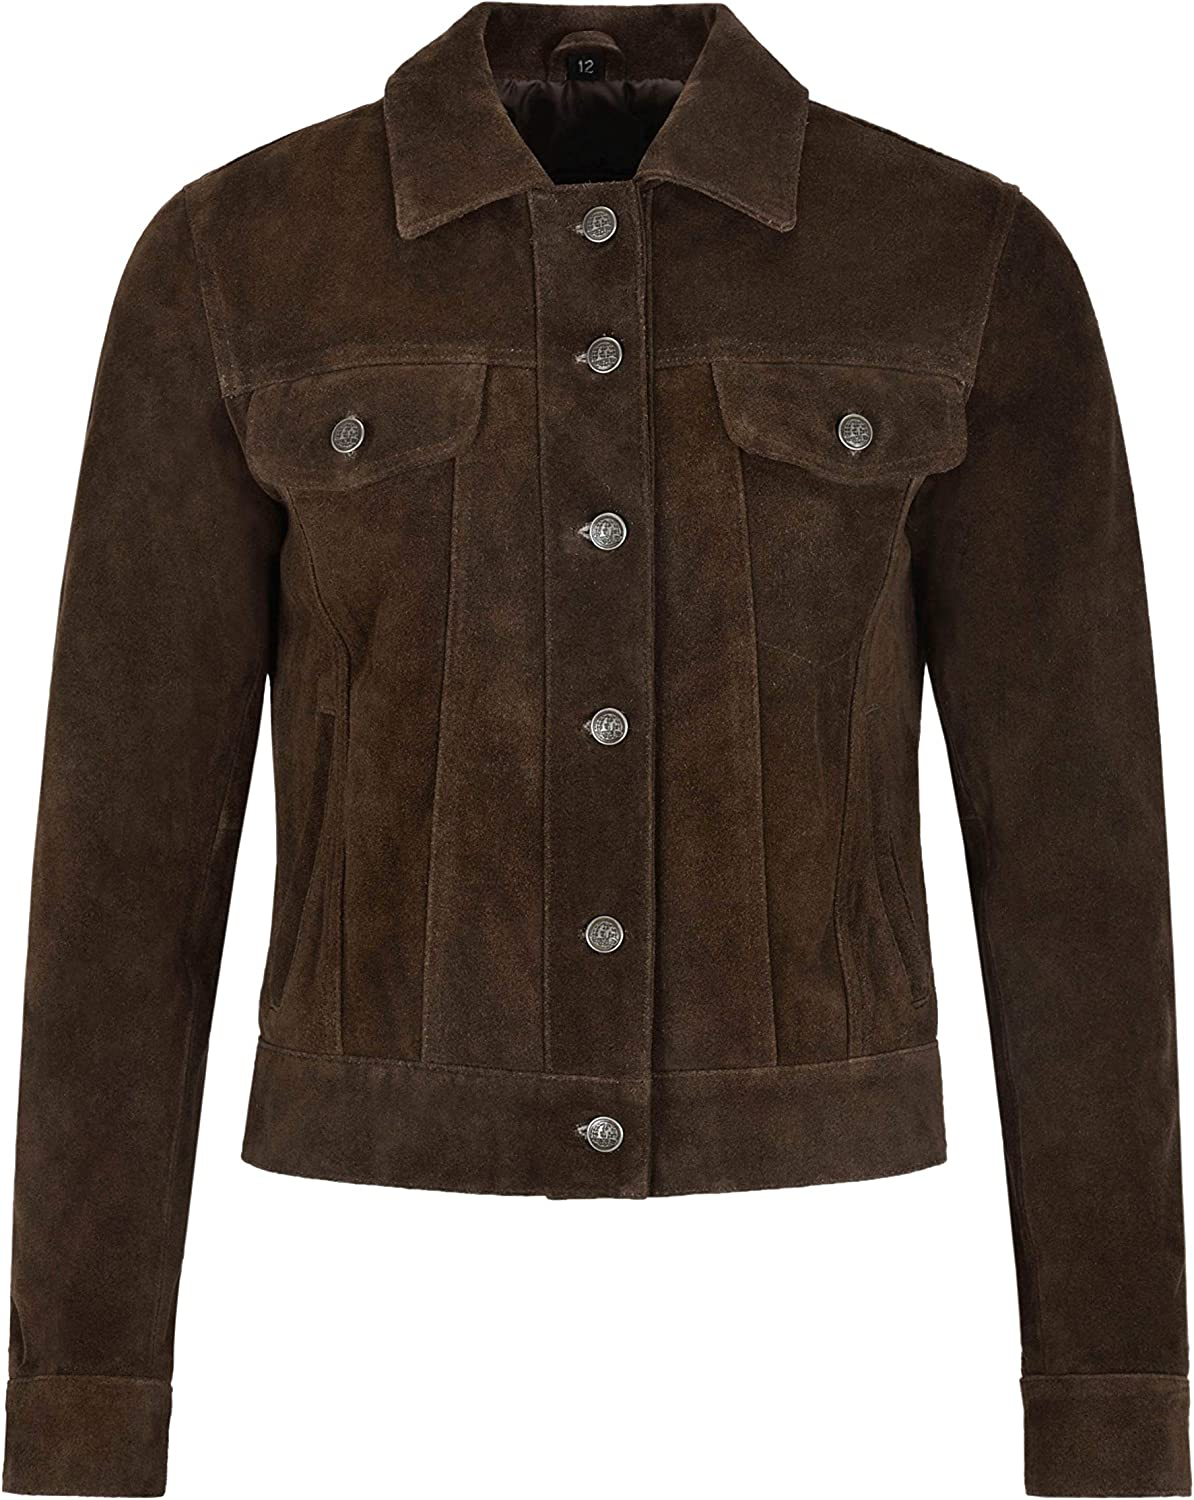 Carrie CH Hoxton Womens Trucker Real Leather Jacket 100/% Suede Casual Fashion Shirt Jacket 1680